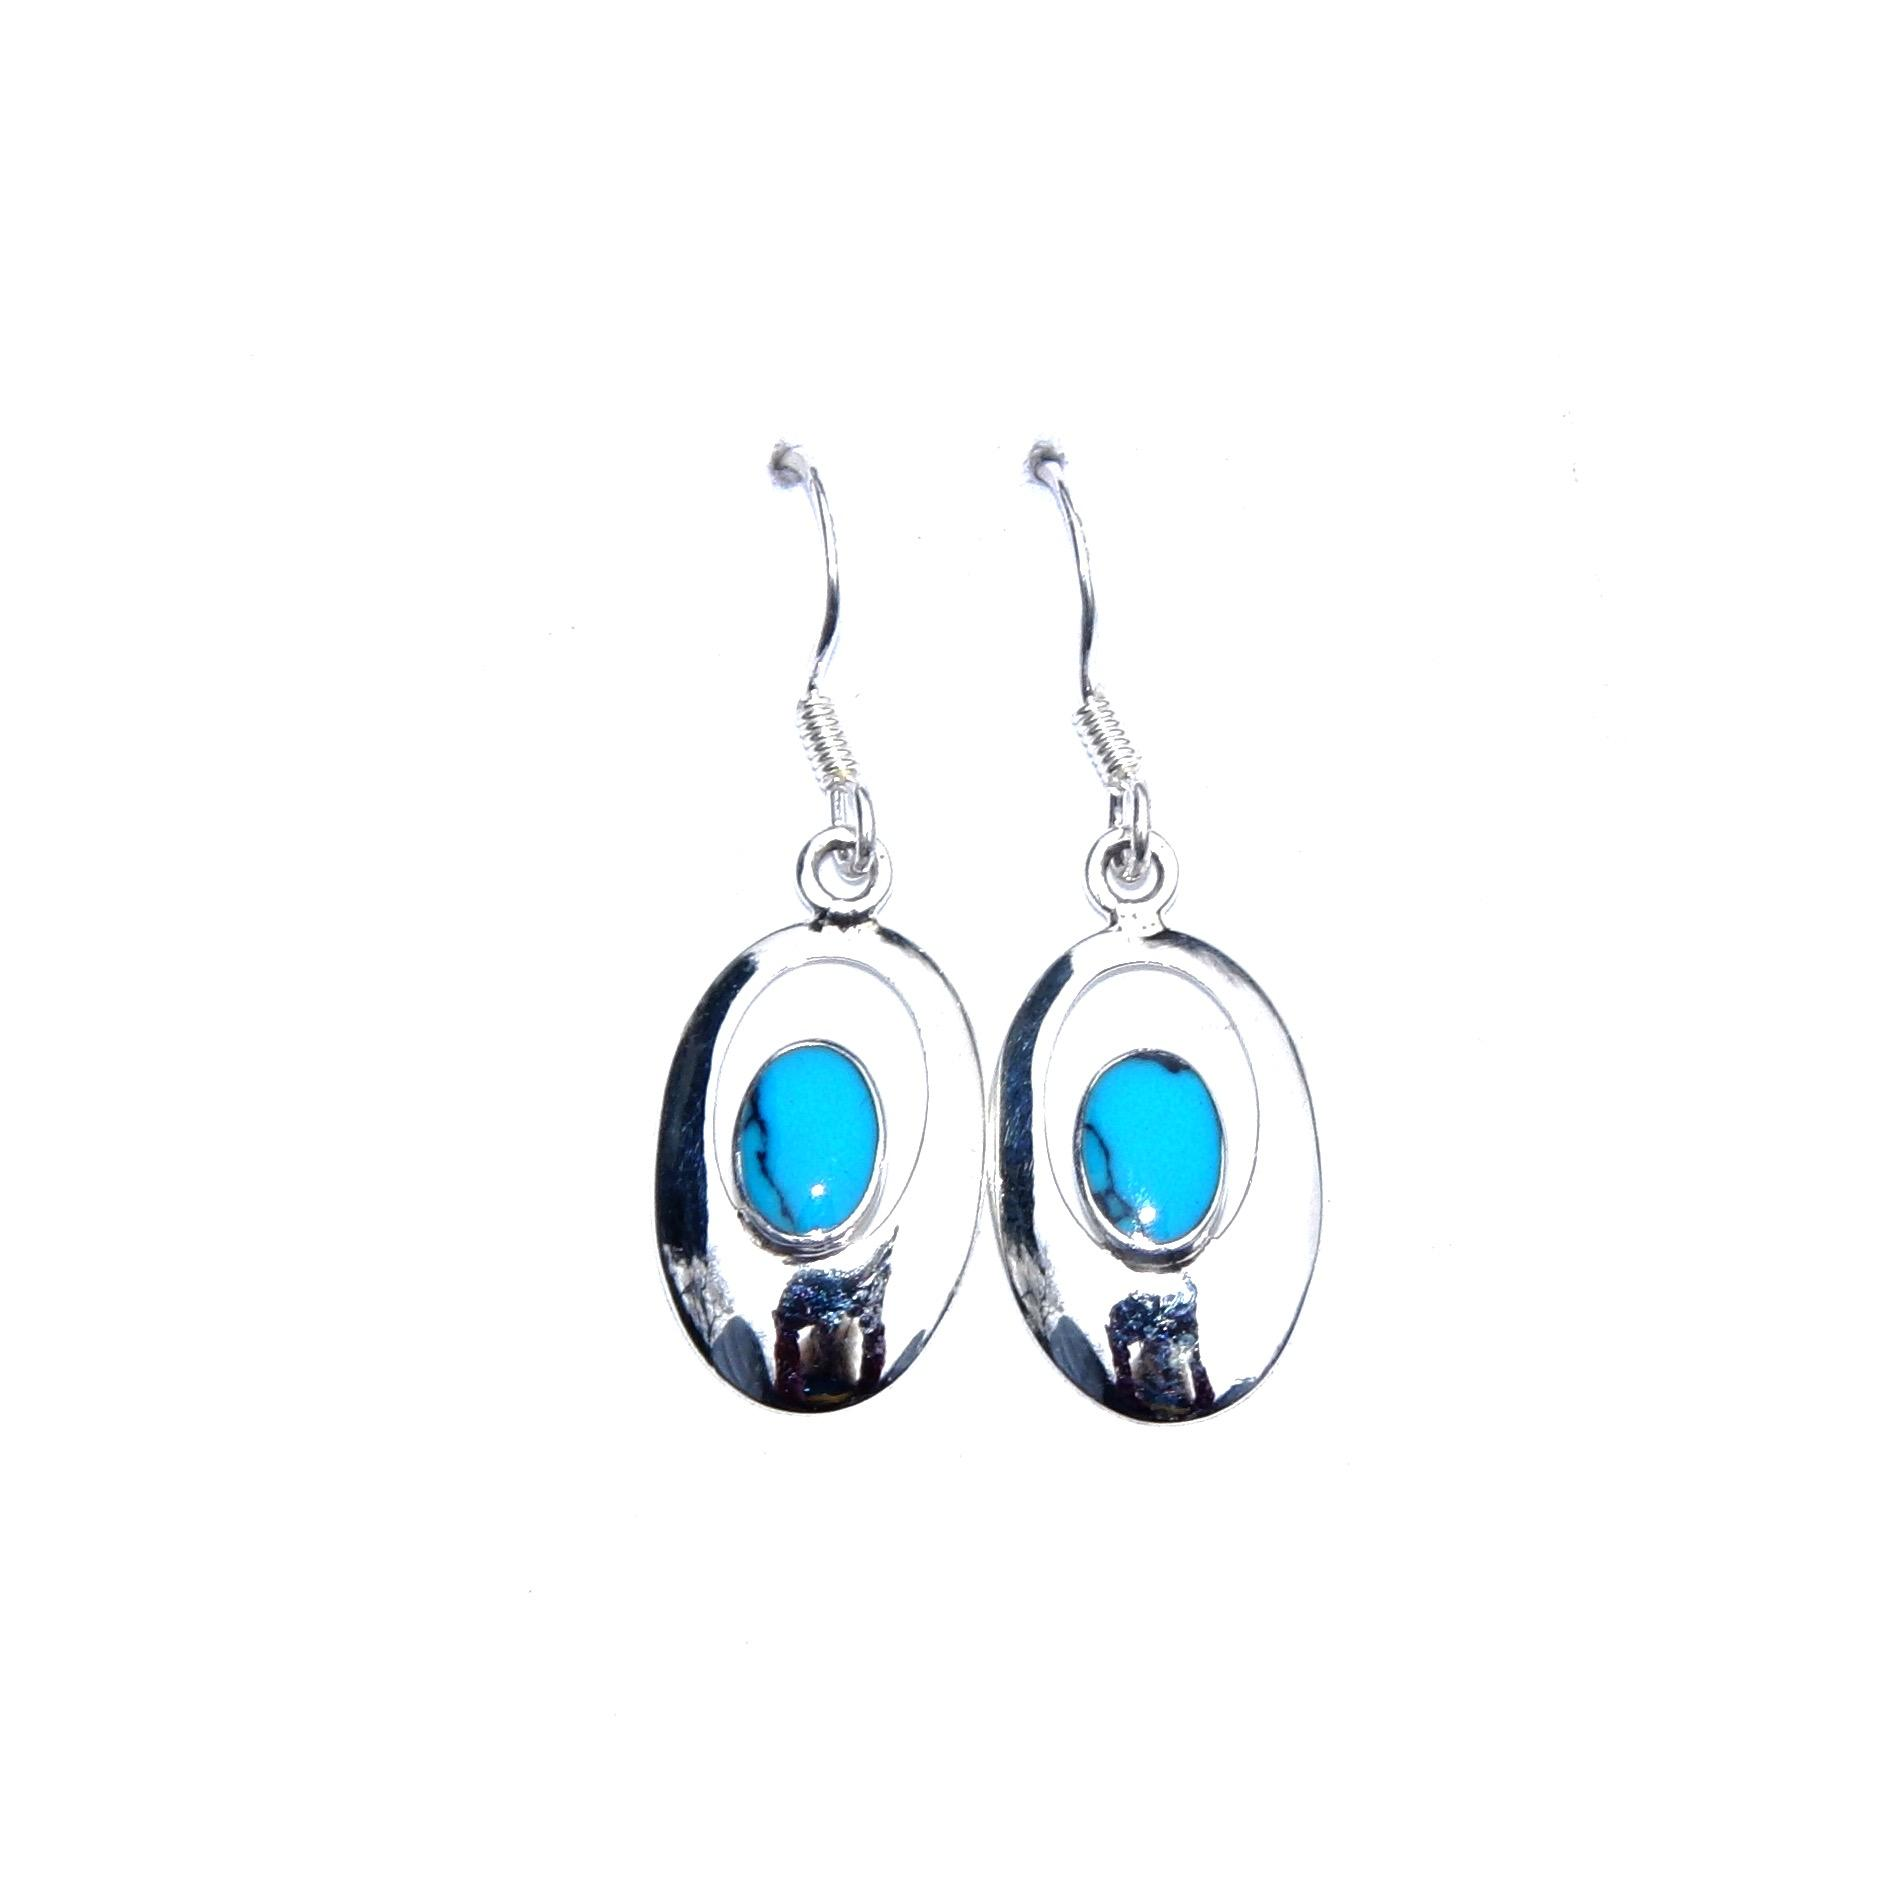 Beautiful Turquoise Oval Outline Earrings